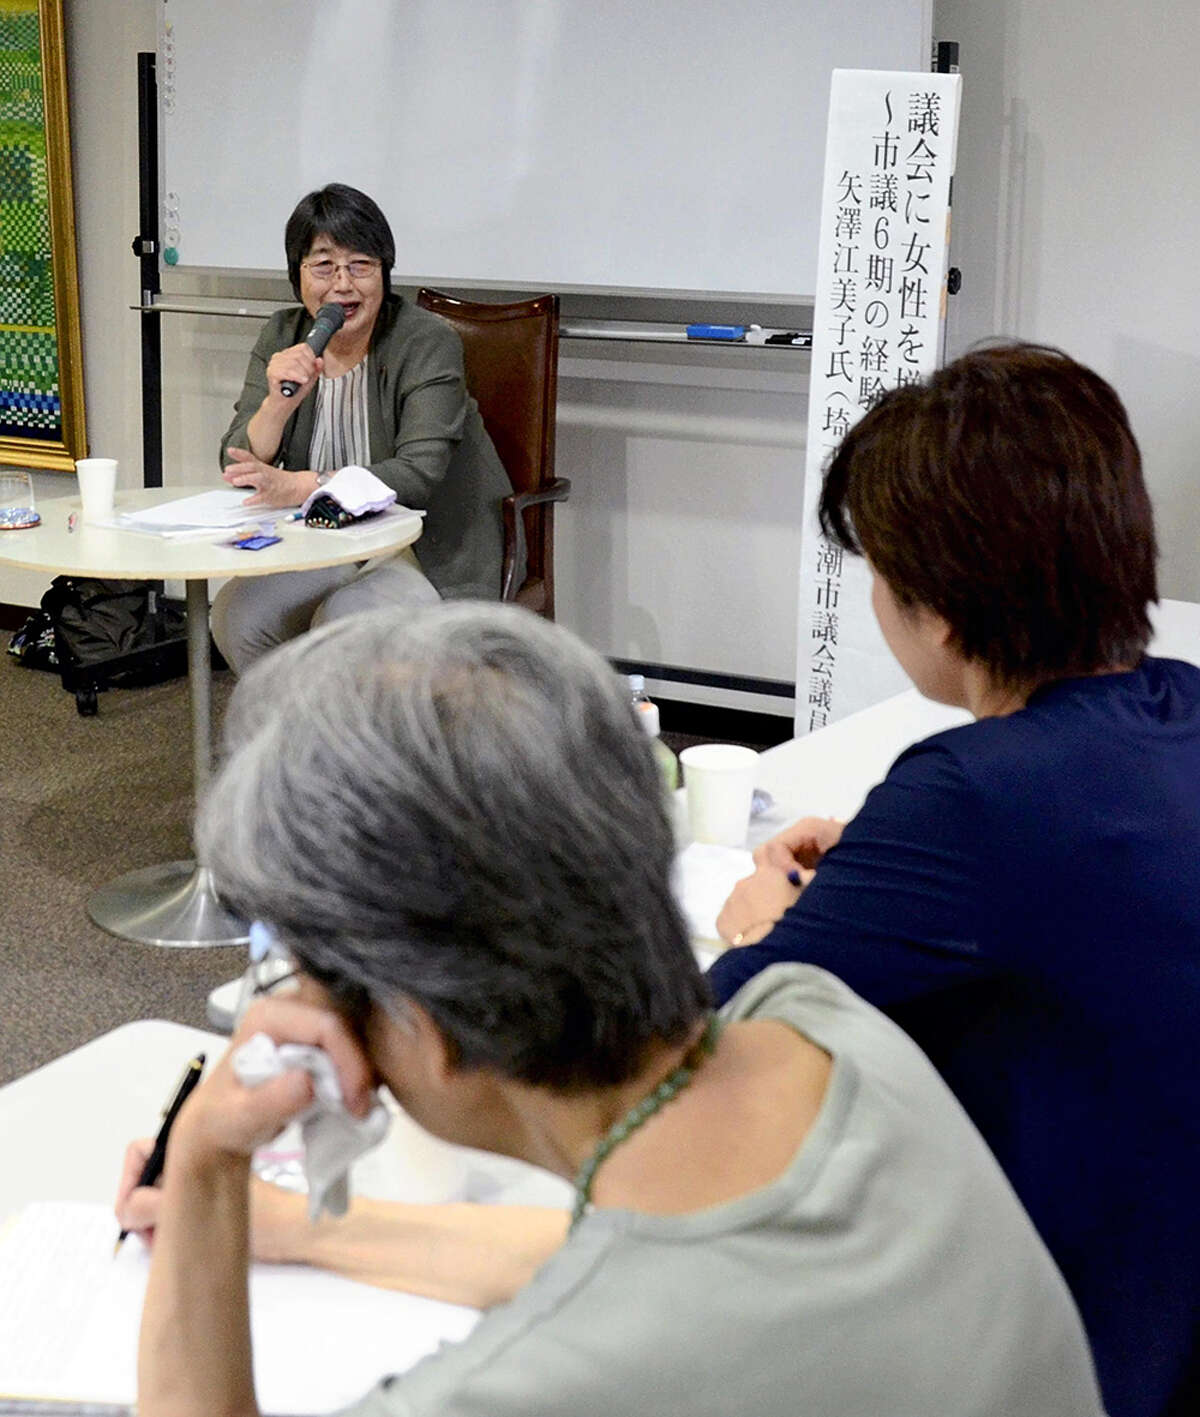 Participants discuss how to increase the number of women in local assemblies and the Diet in a seminar at the Ichikawa Fusae Center for Women and Governance in Shibuya Ward, Tokyo, in June.